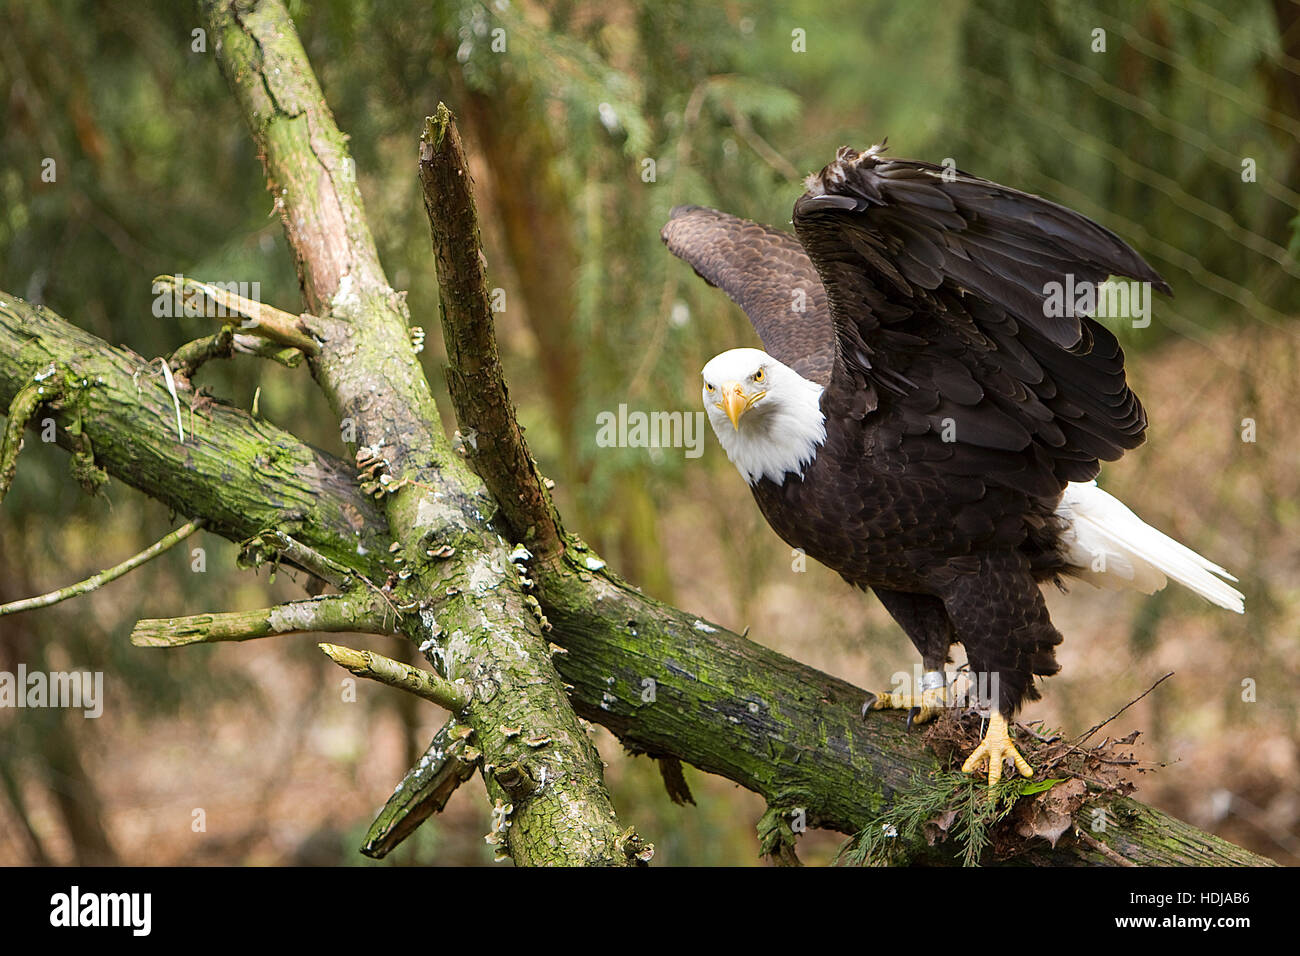 A Bald Eagle with wings open looking straight into the camera - Stock Image